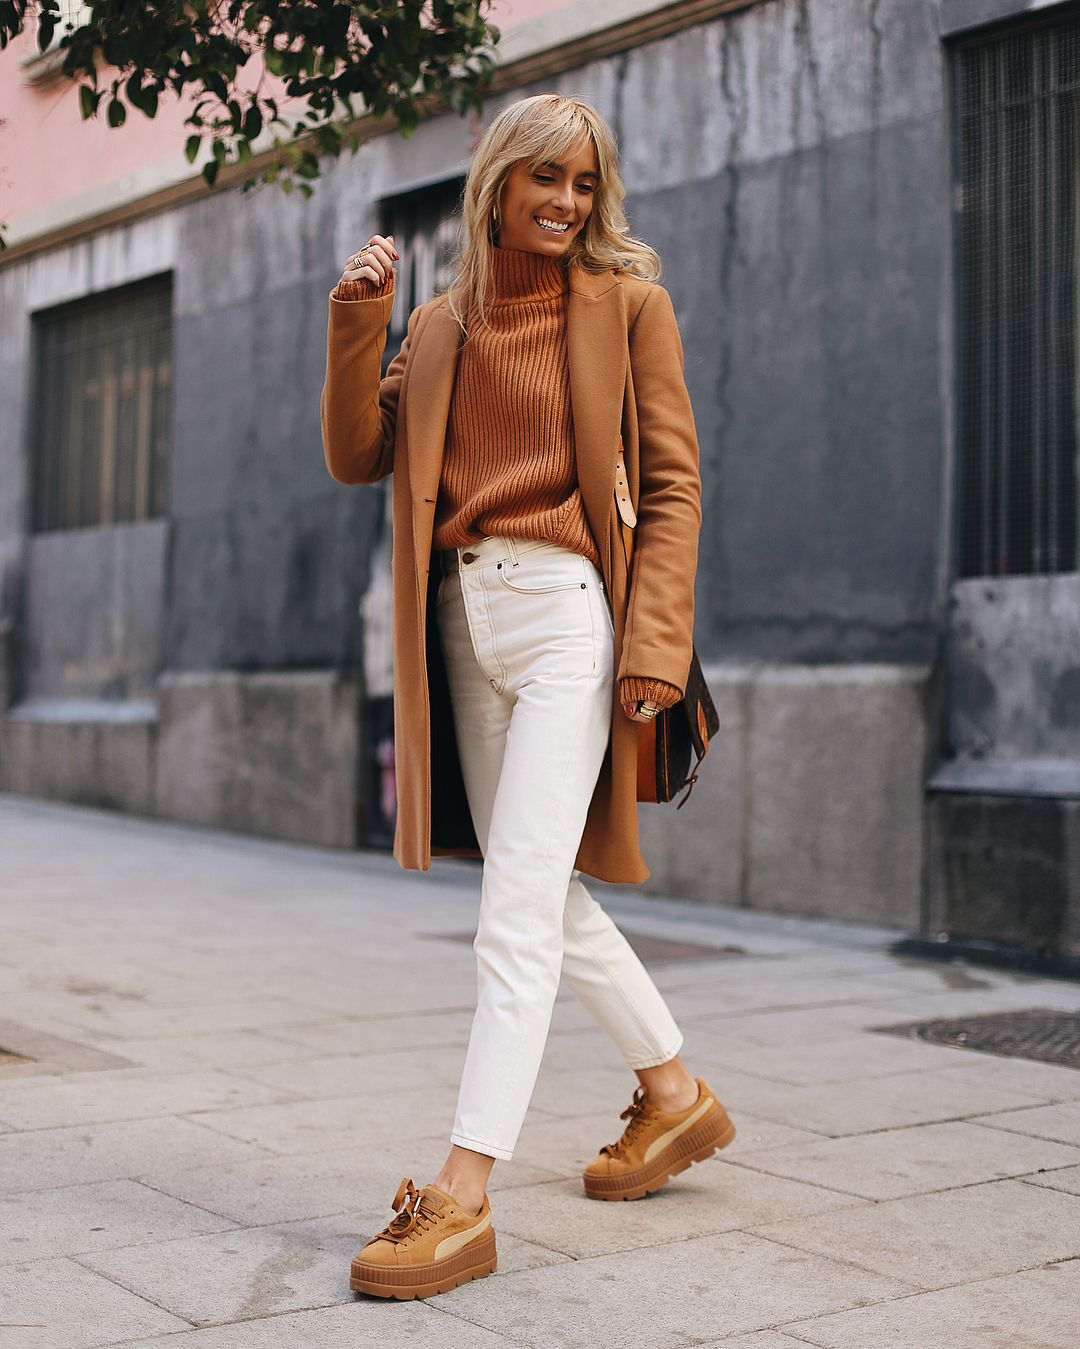 Pin by Merel Schrijver on Cold days | Fashion, Classic